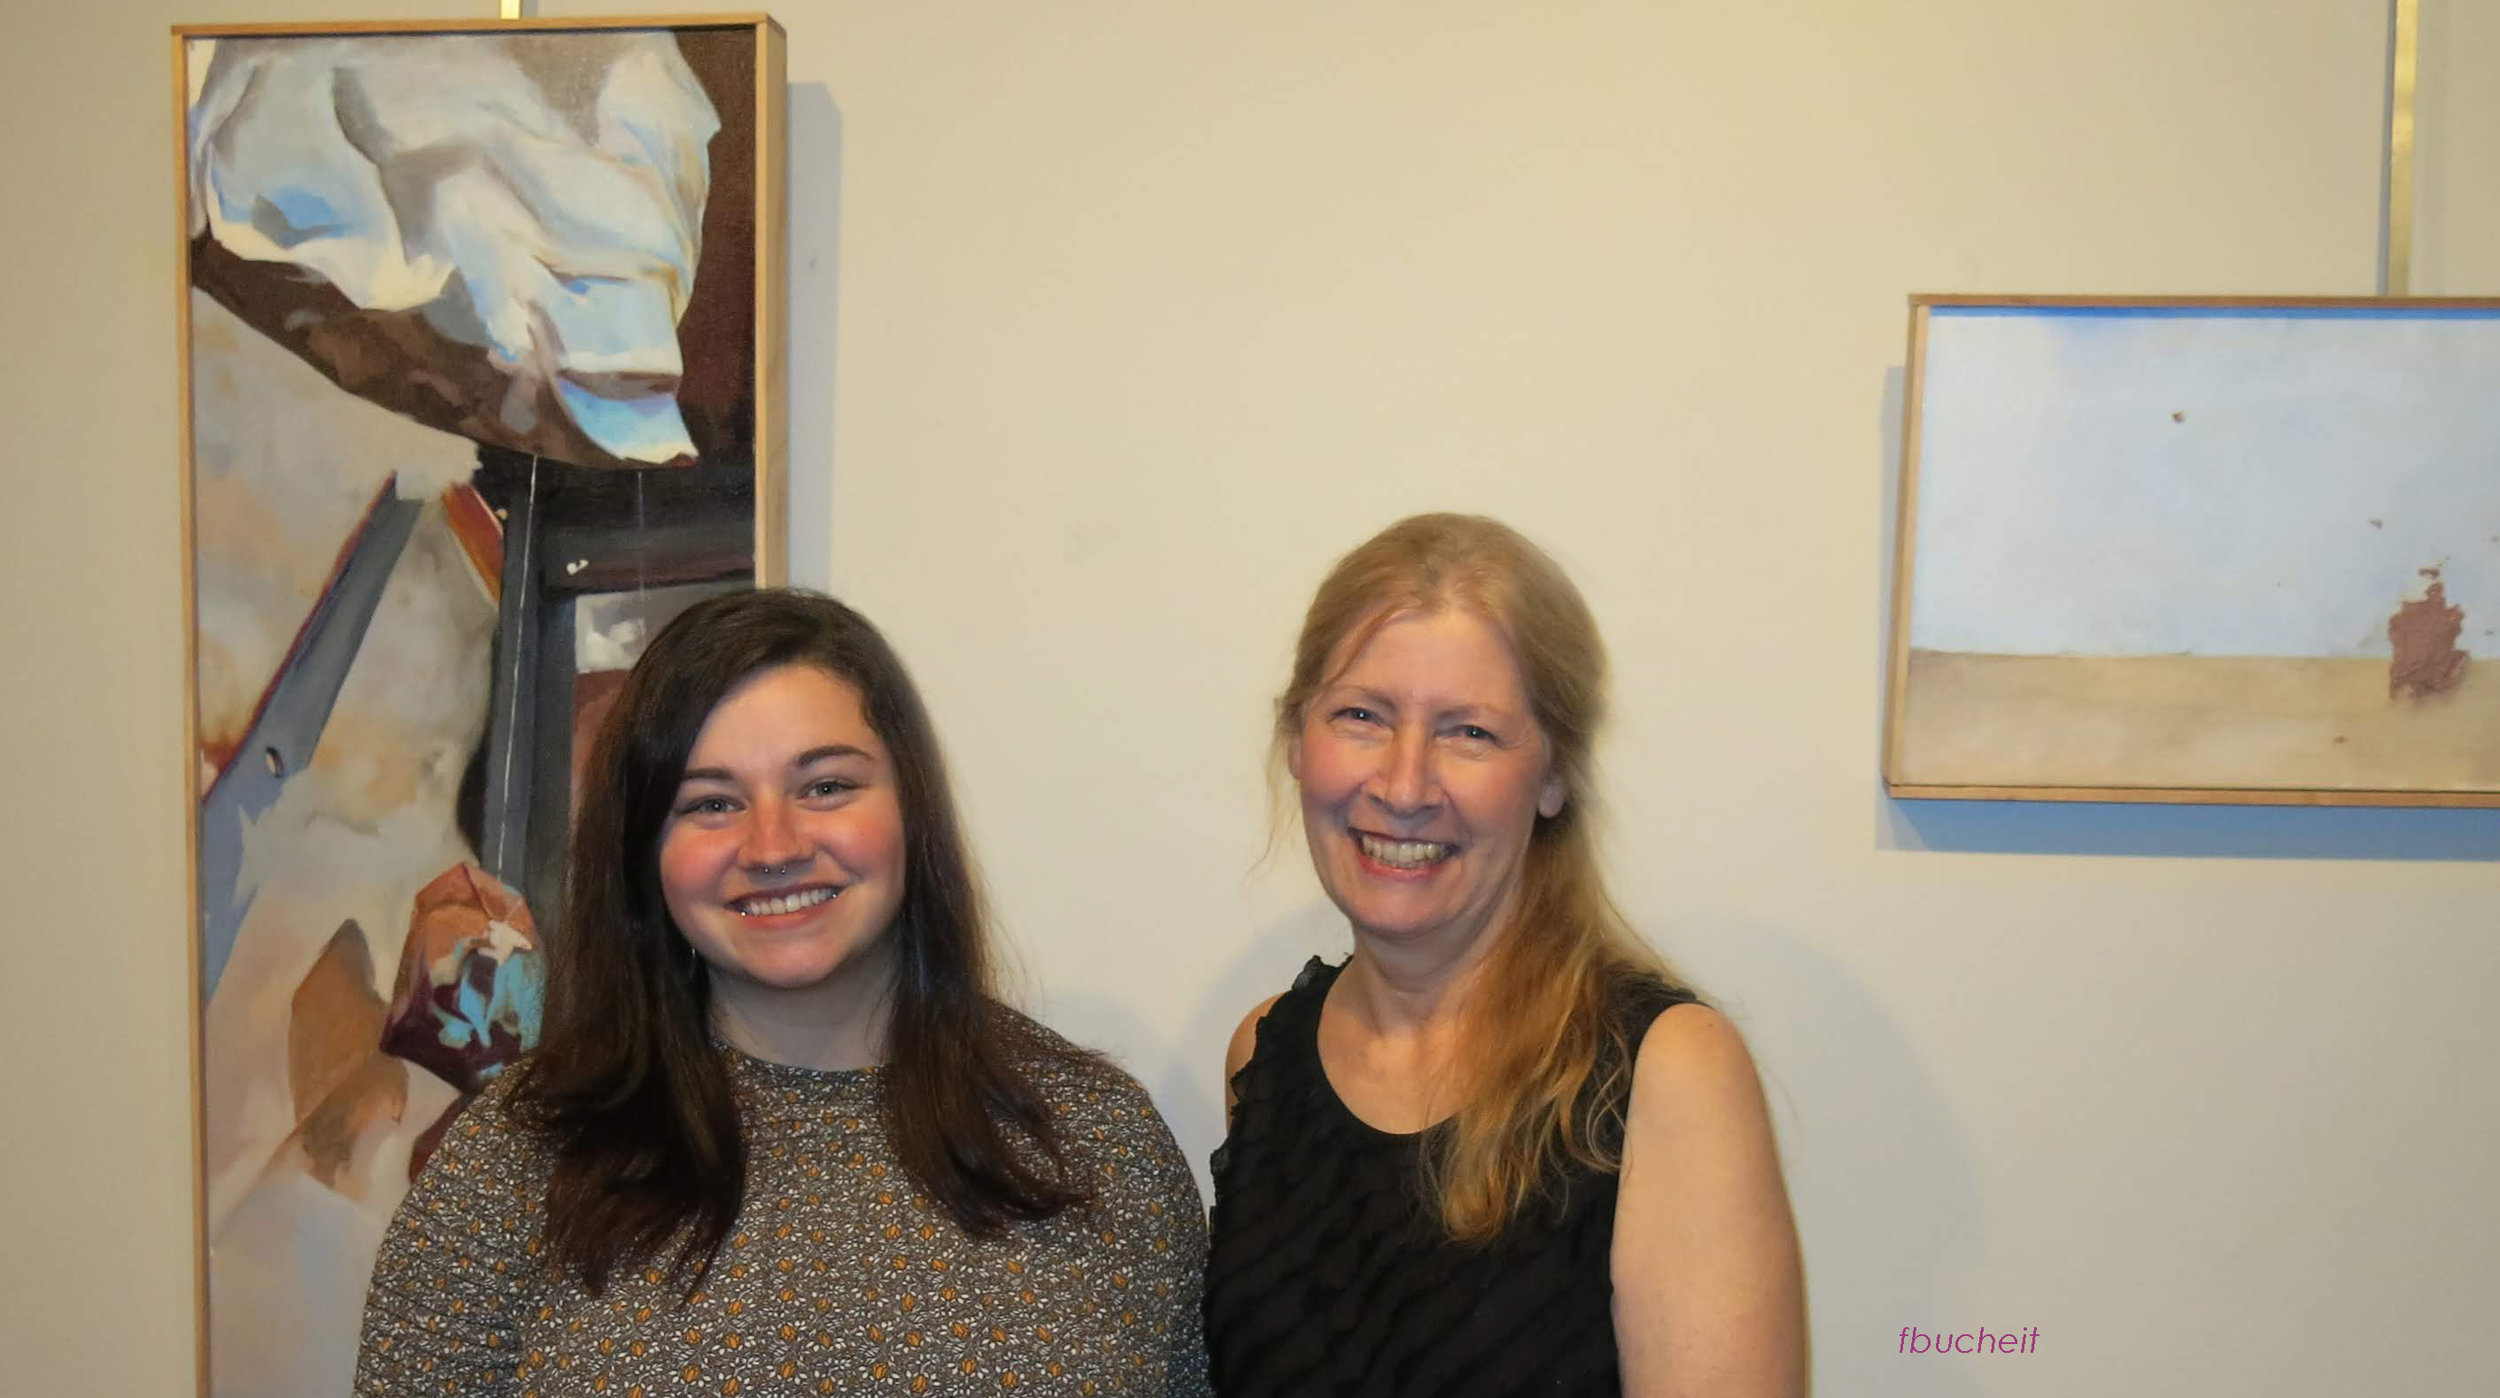 Claira, left, and Carol, CCAC president to her right. Both received degrees from Edinboro University of PA, and enjoyed sharing memories of making art on campus.